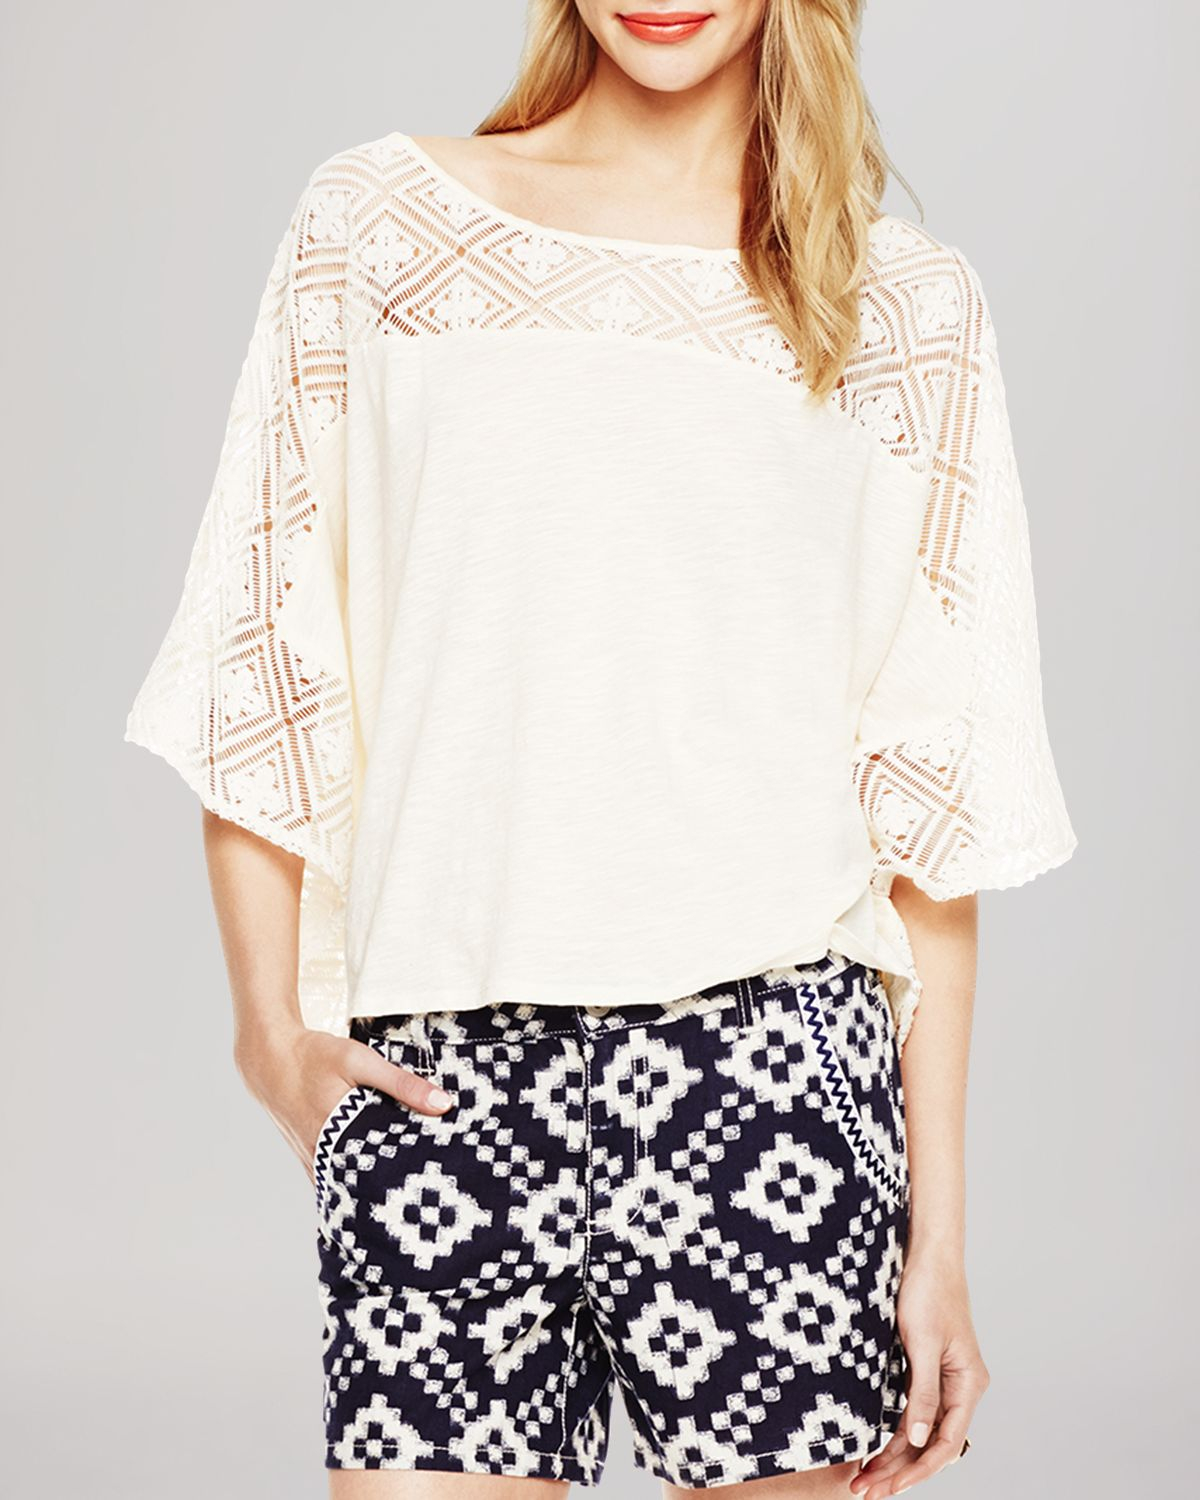 Lyst - Two By Vince Camuto Moroccan Tile Lace Top In White-3378